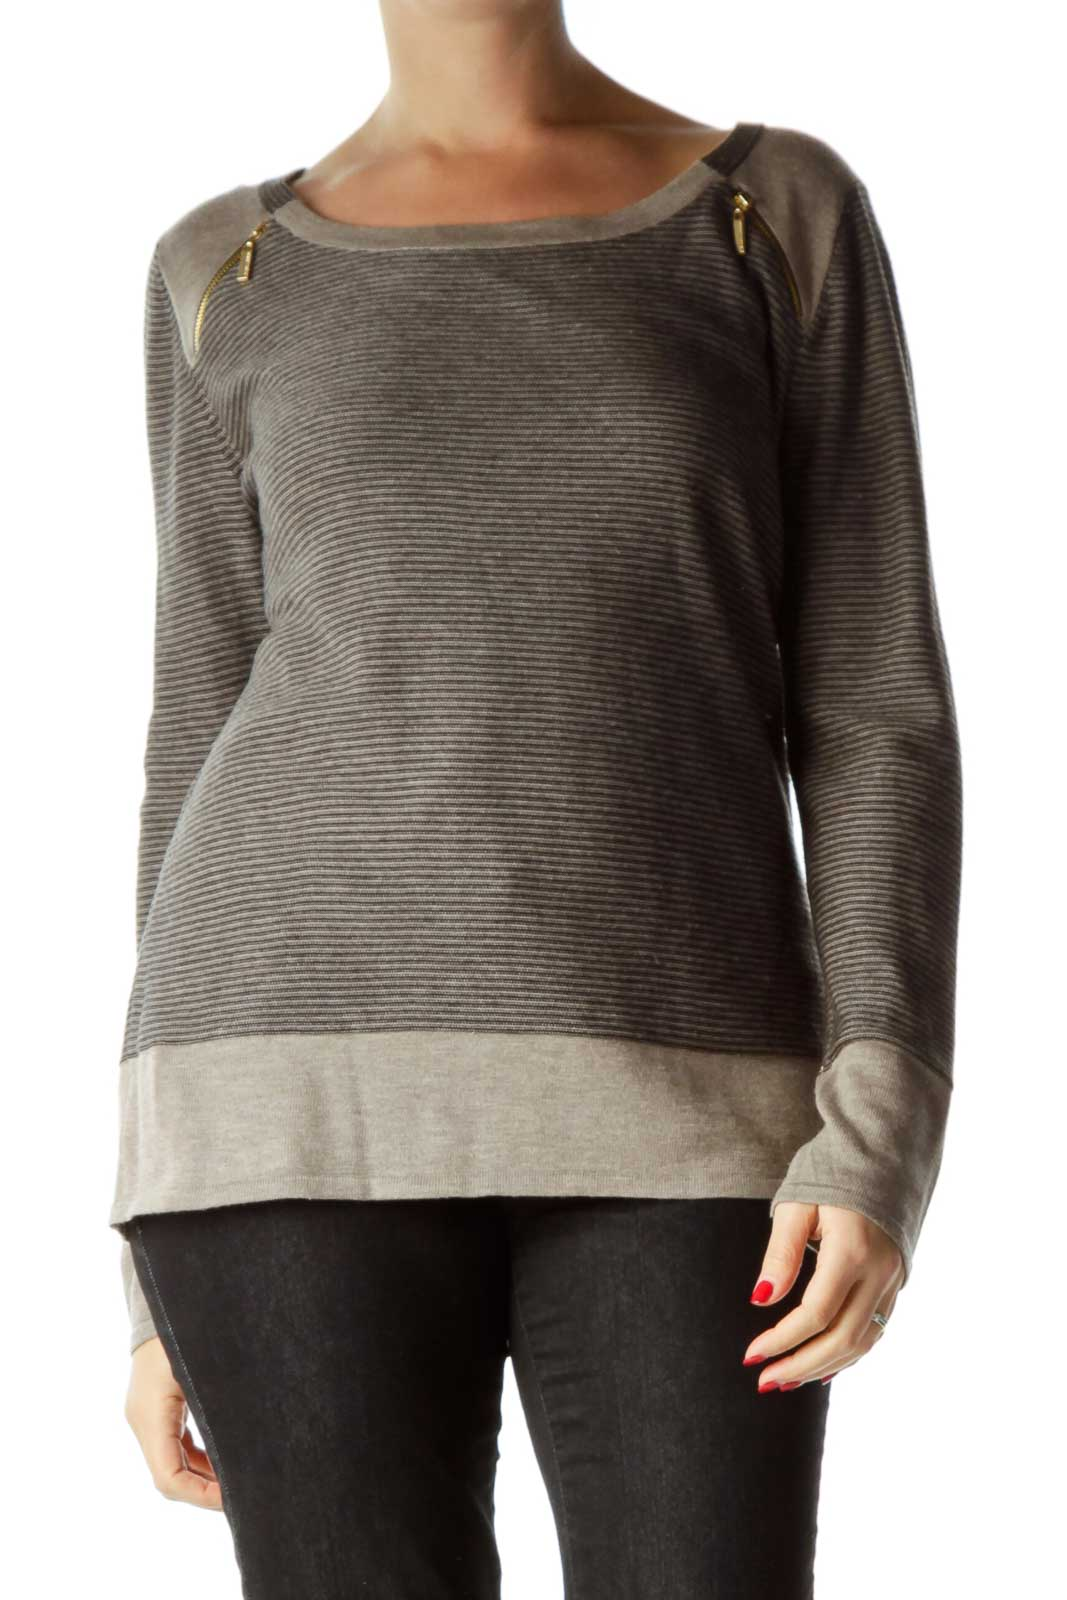 Brown Zipper Detailed Striped Top Front